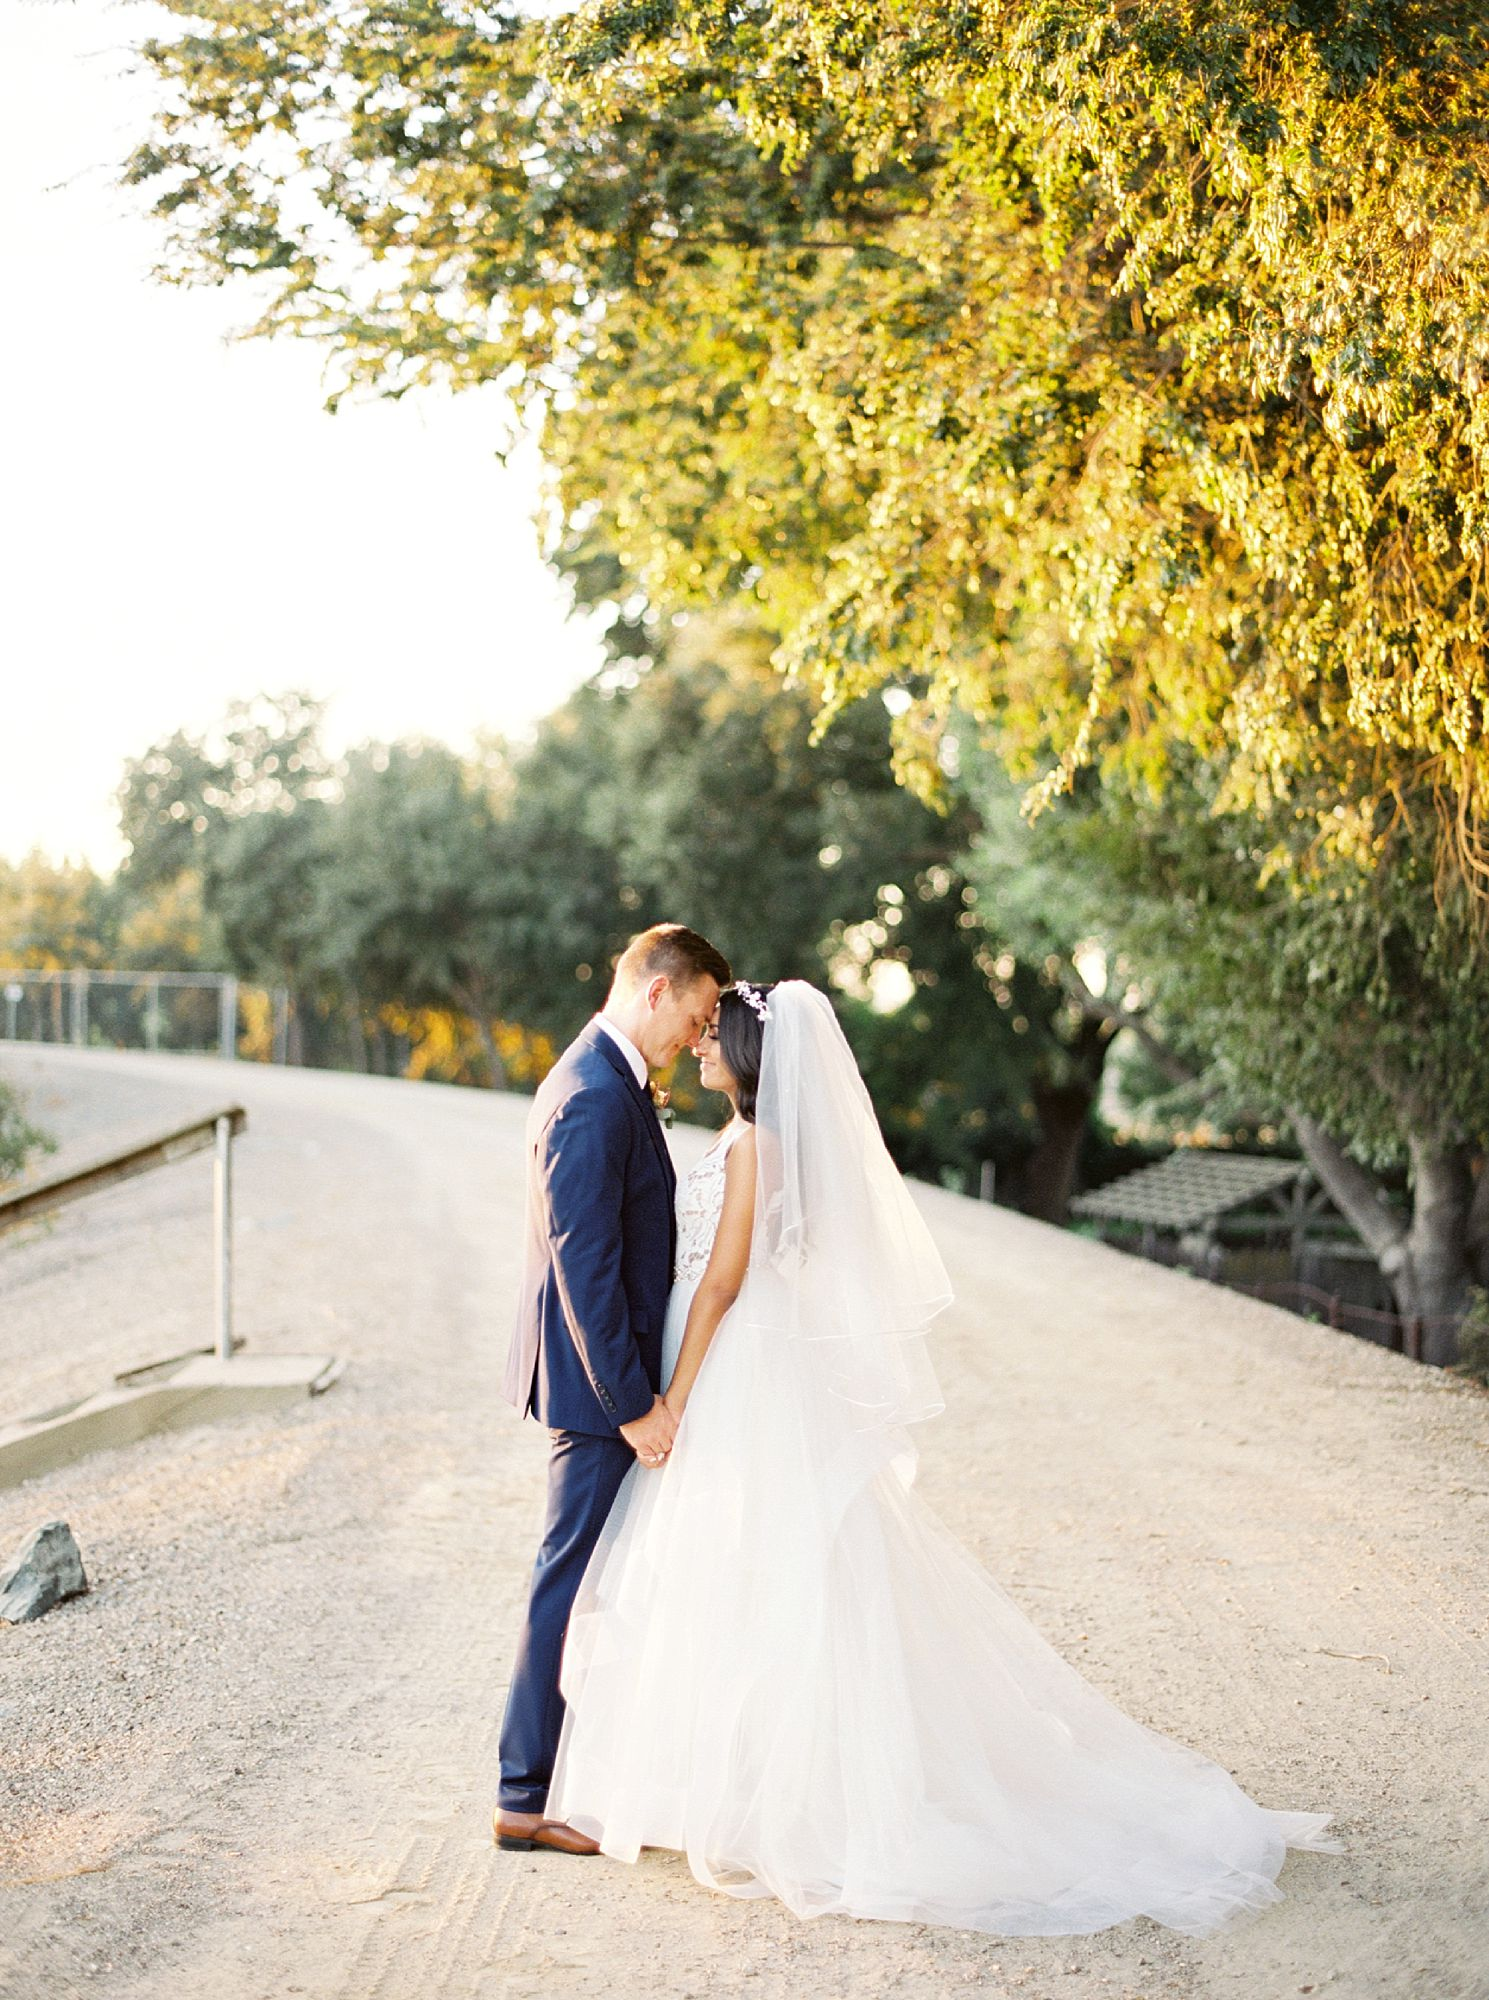 The River Mill Wedding Stockton - Ashley Baumgartner - Stockton Wedding Photographer - Sacramento Wedding Photography - Hybrid and Film Photographer - Sacramento Film Photographer_0051.jpg